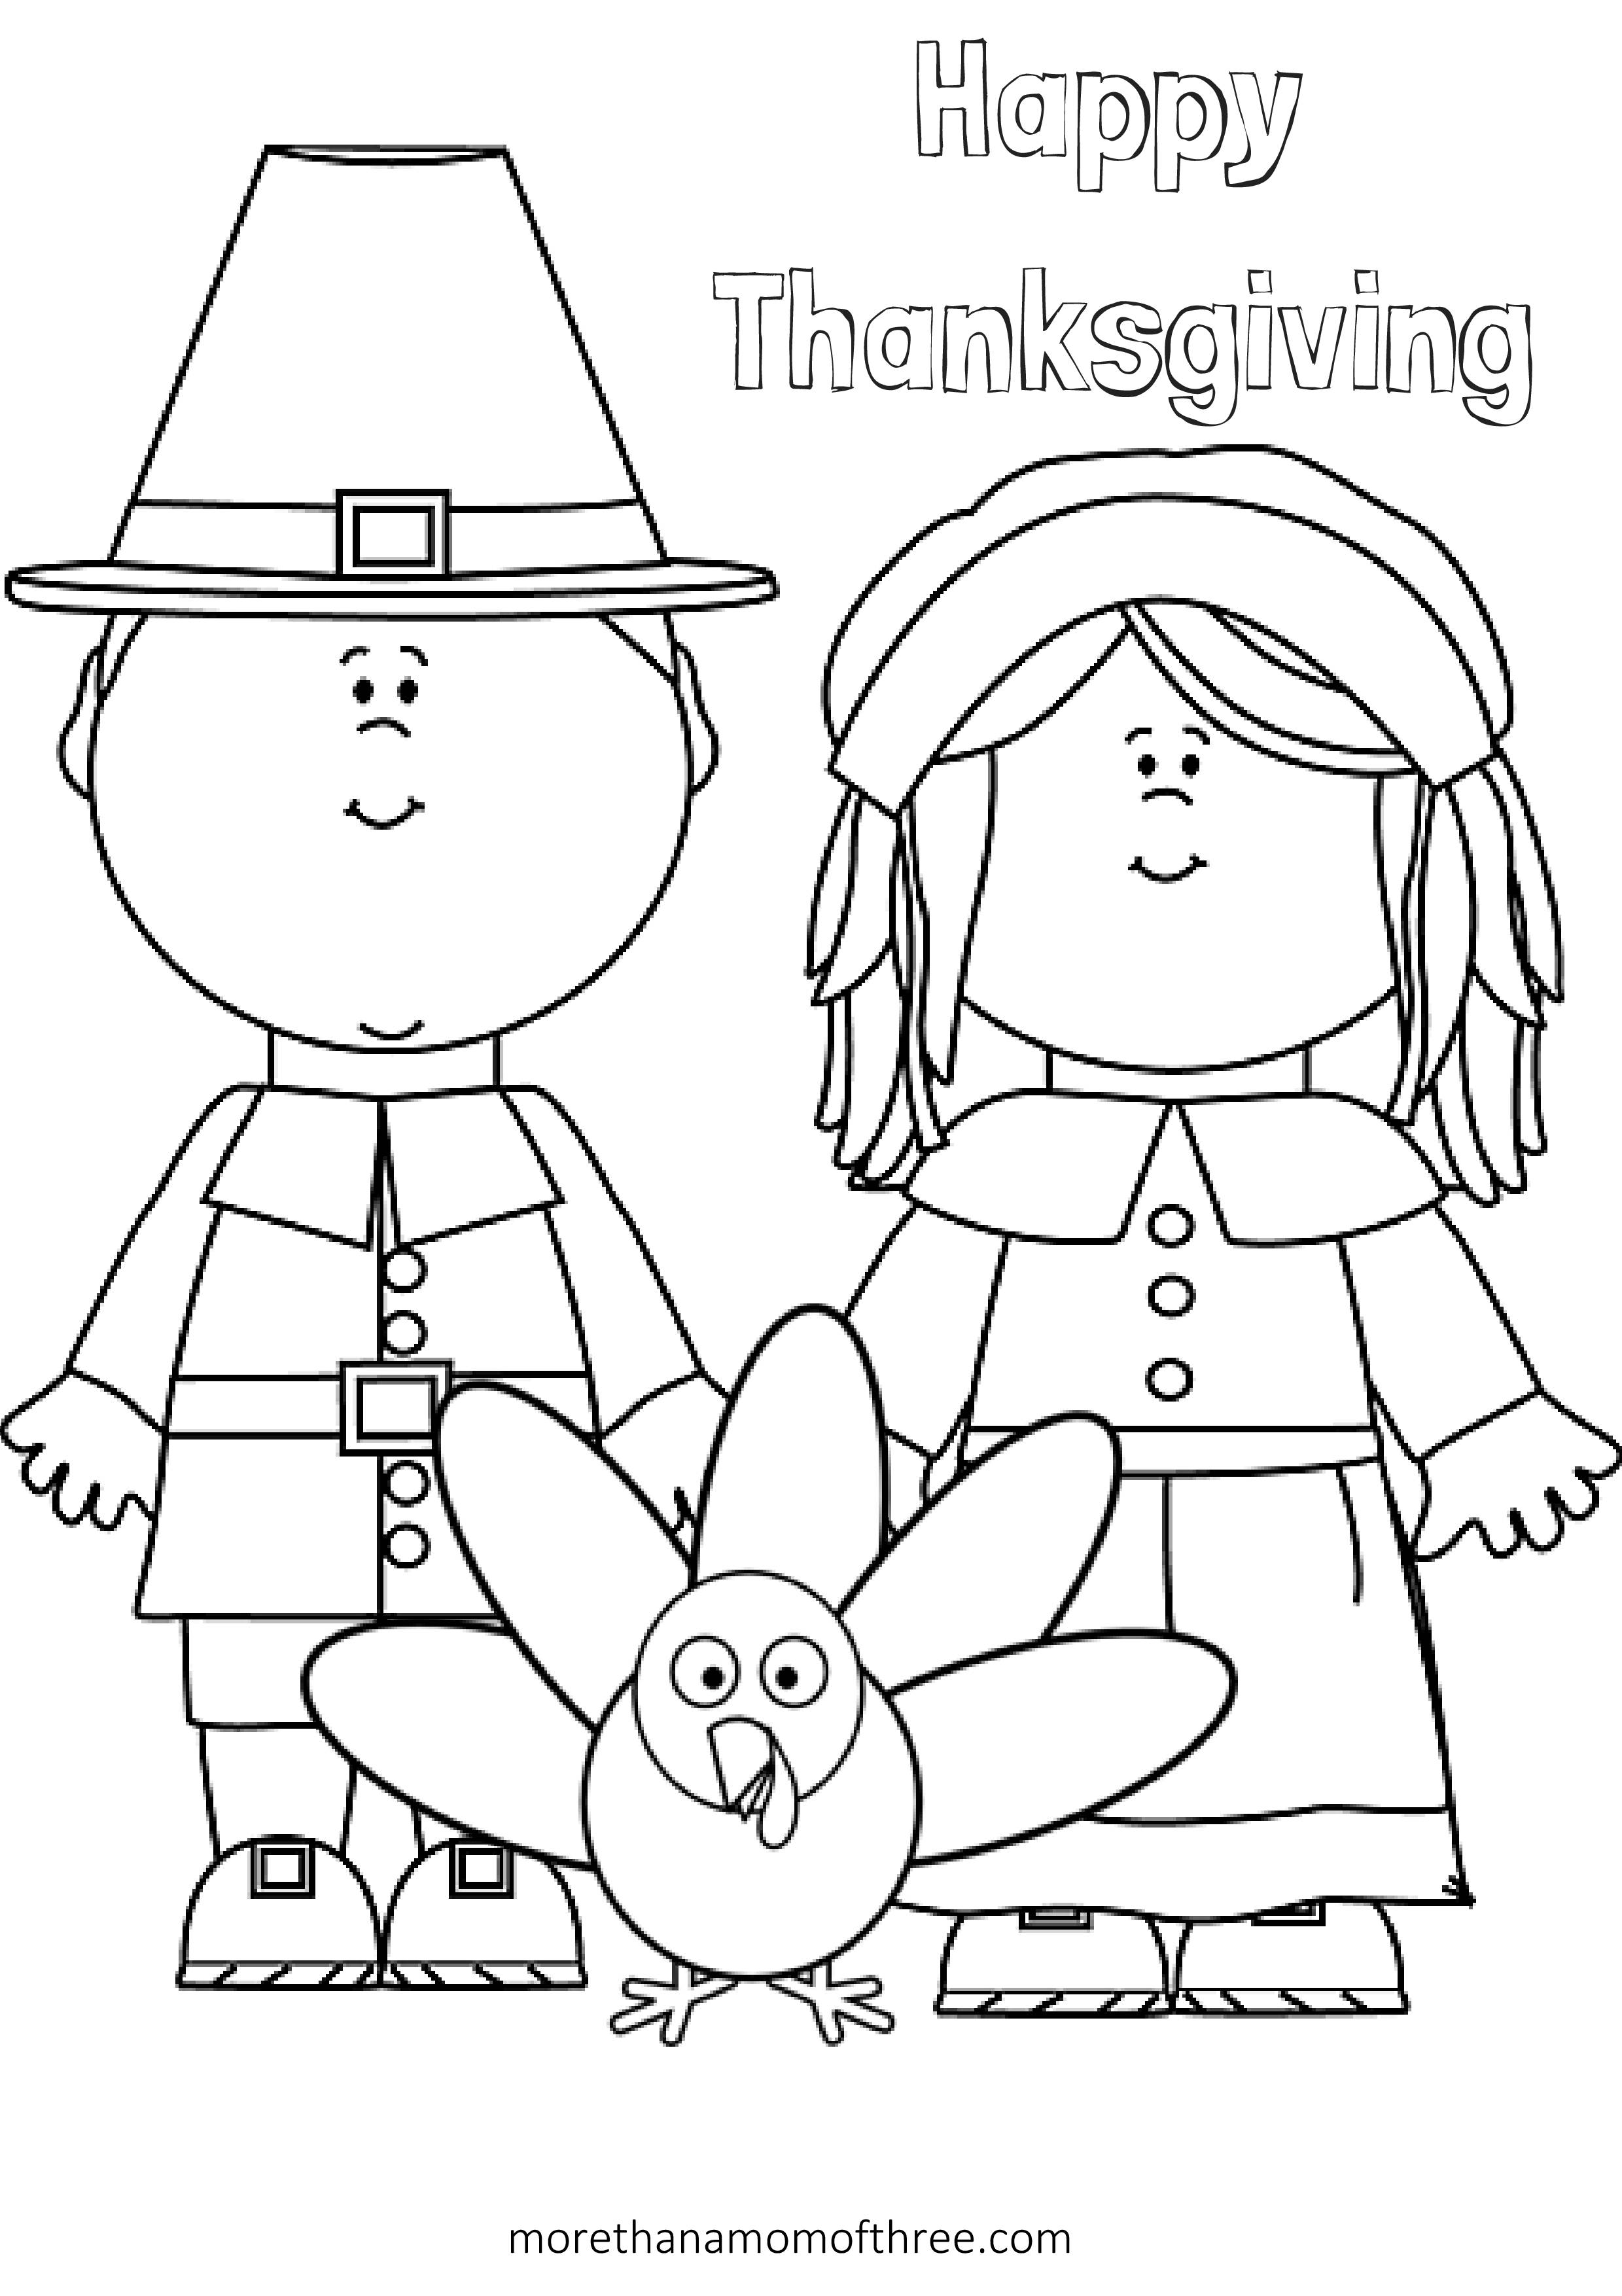 christian thanksgiving coloring pages christian thanksgiving coloring pages coloring home christian coloring pages thanksgiving